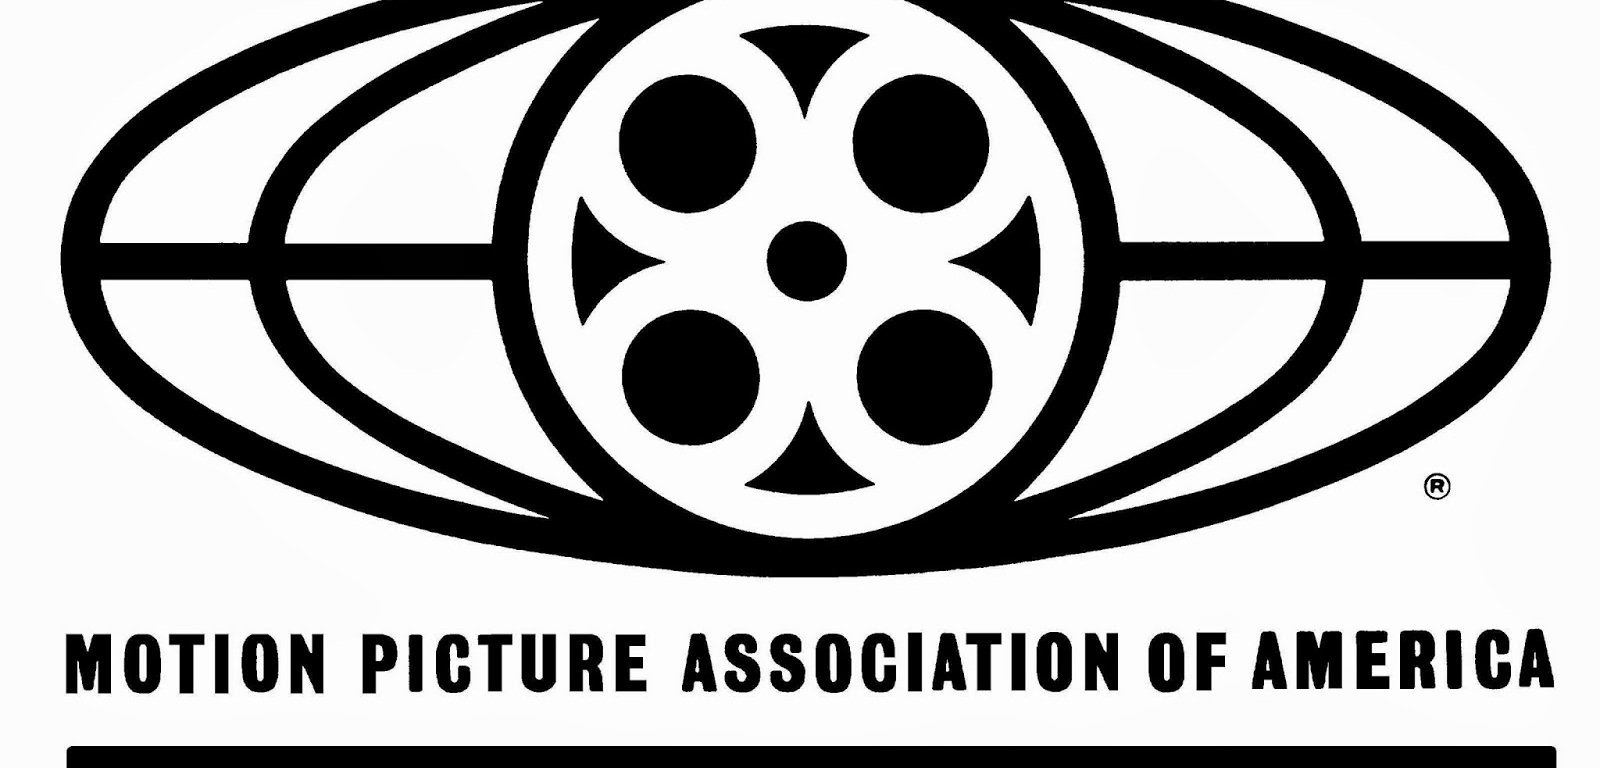 Motion Picture Association Of America History And Controversy